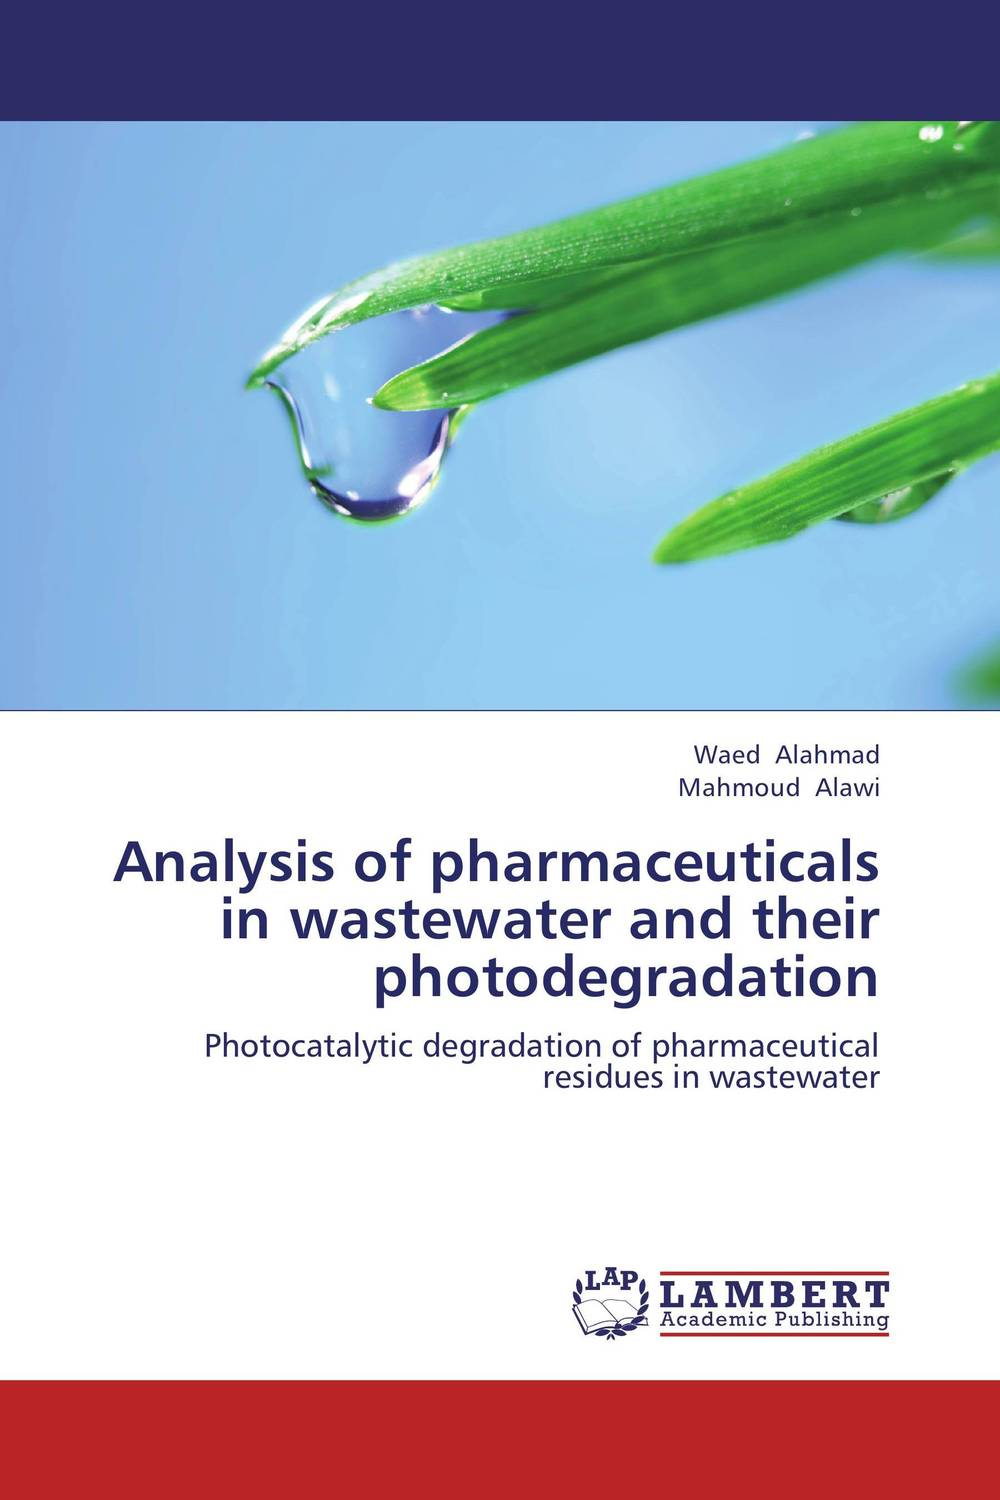 Analysis of pharmaceuticals in wastewater and their photodegradation impurity profiling of drugs and pharmaceuticals